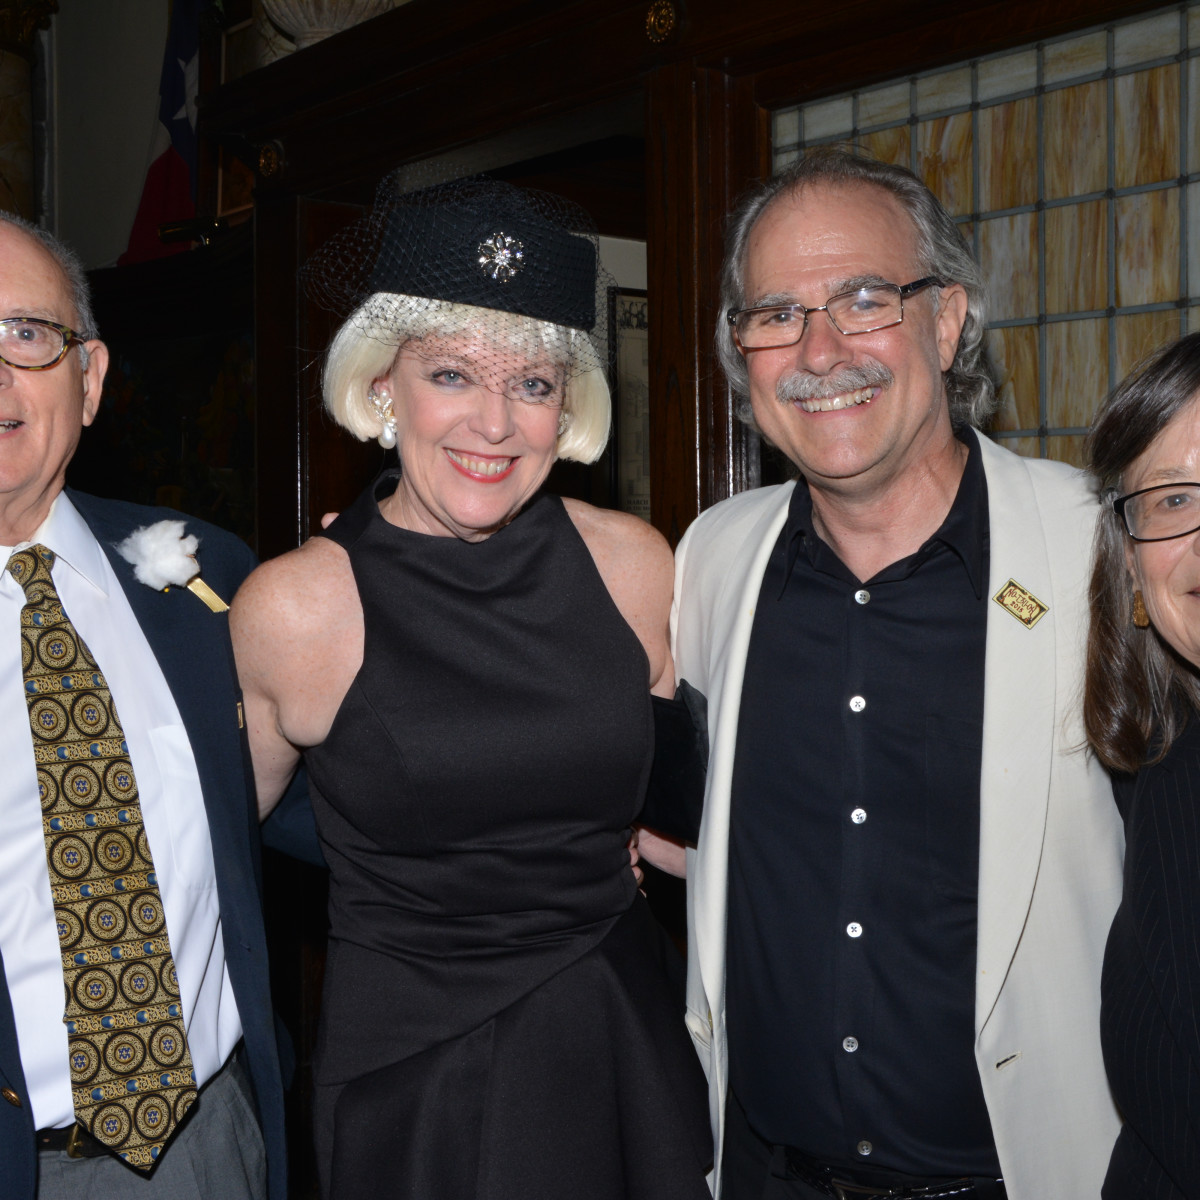 Houston, No-Tsu-Oh gala, September 2015, Bob Pando, Terri DiRaddo, Andy DiRaddo and Trilla Pando